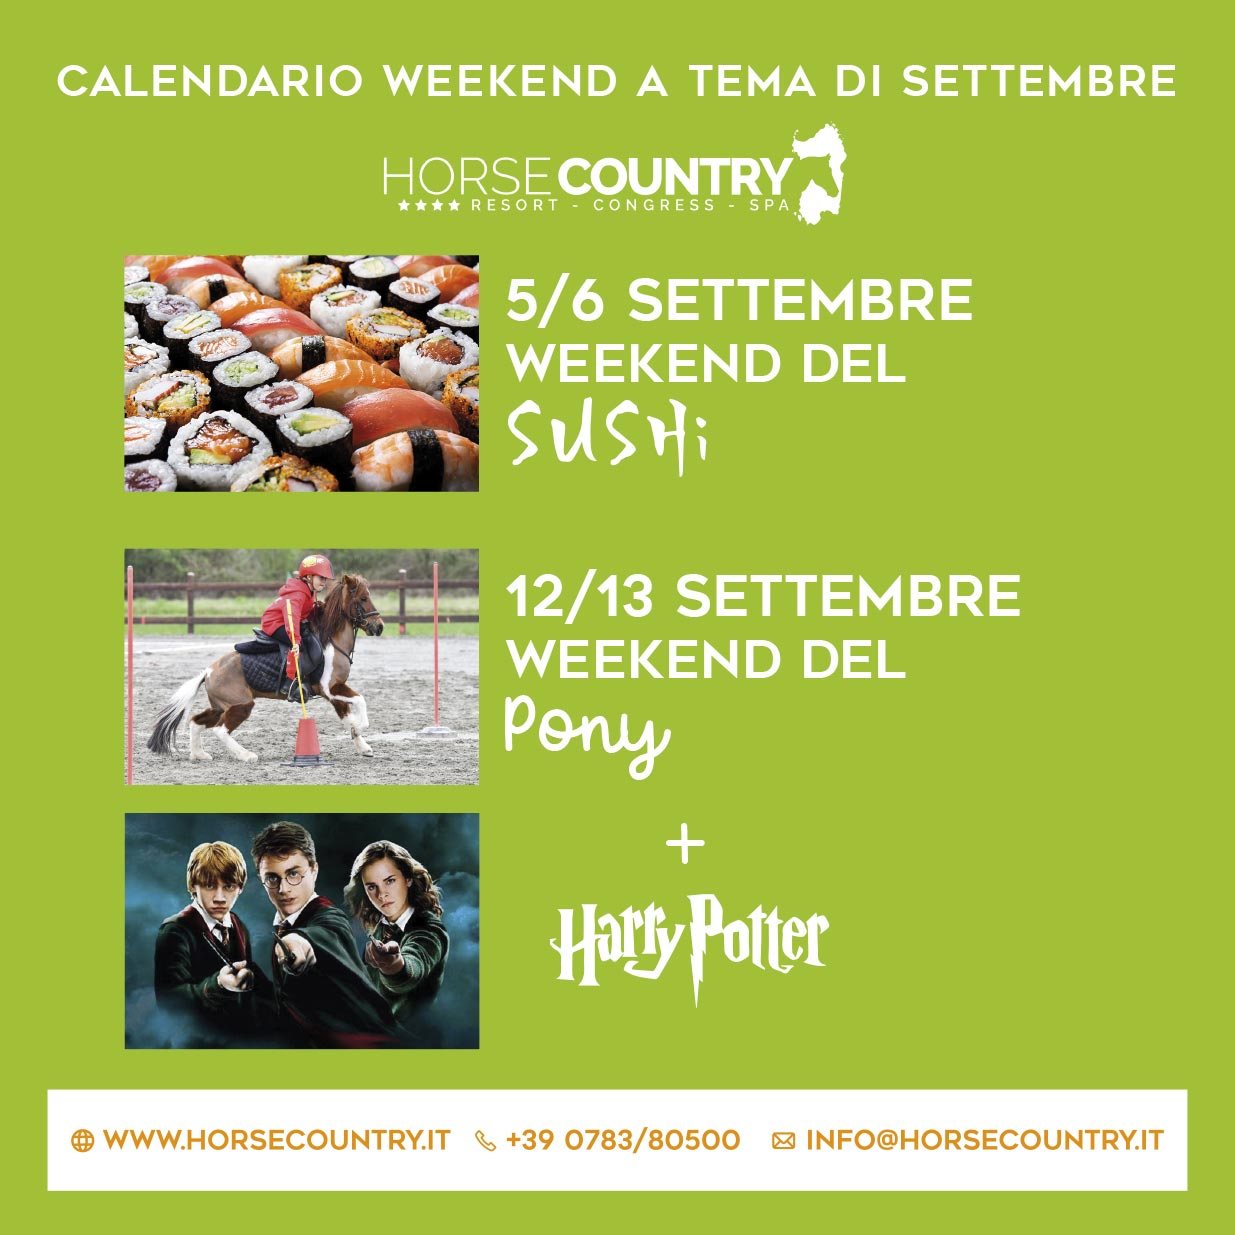 Offerta weekend tematici di Settembre byHorse Country Resort